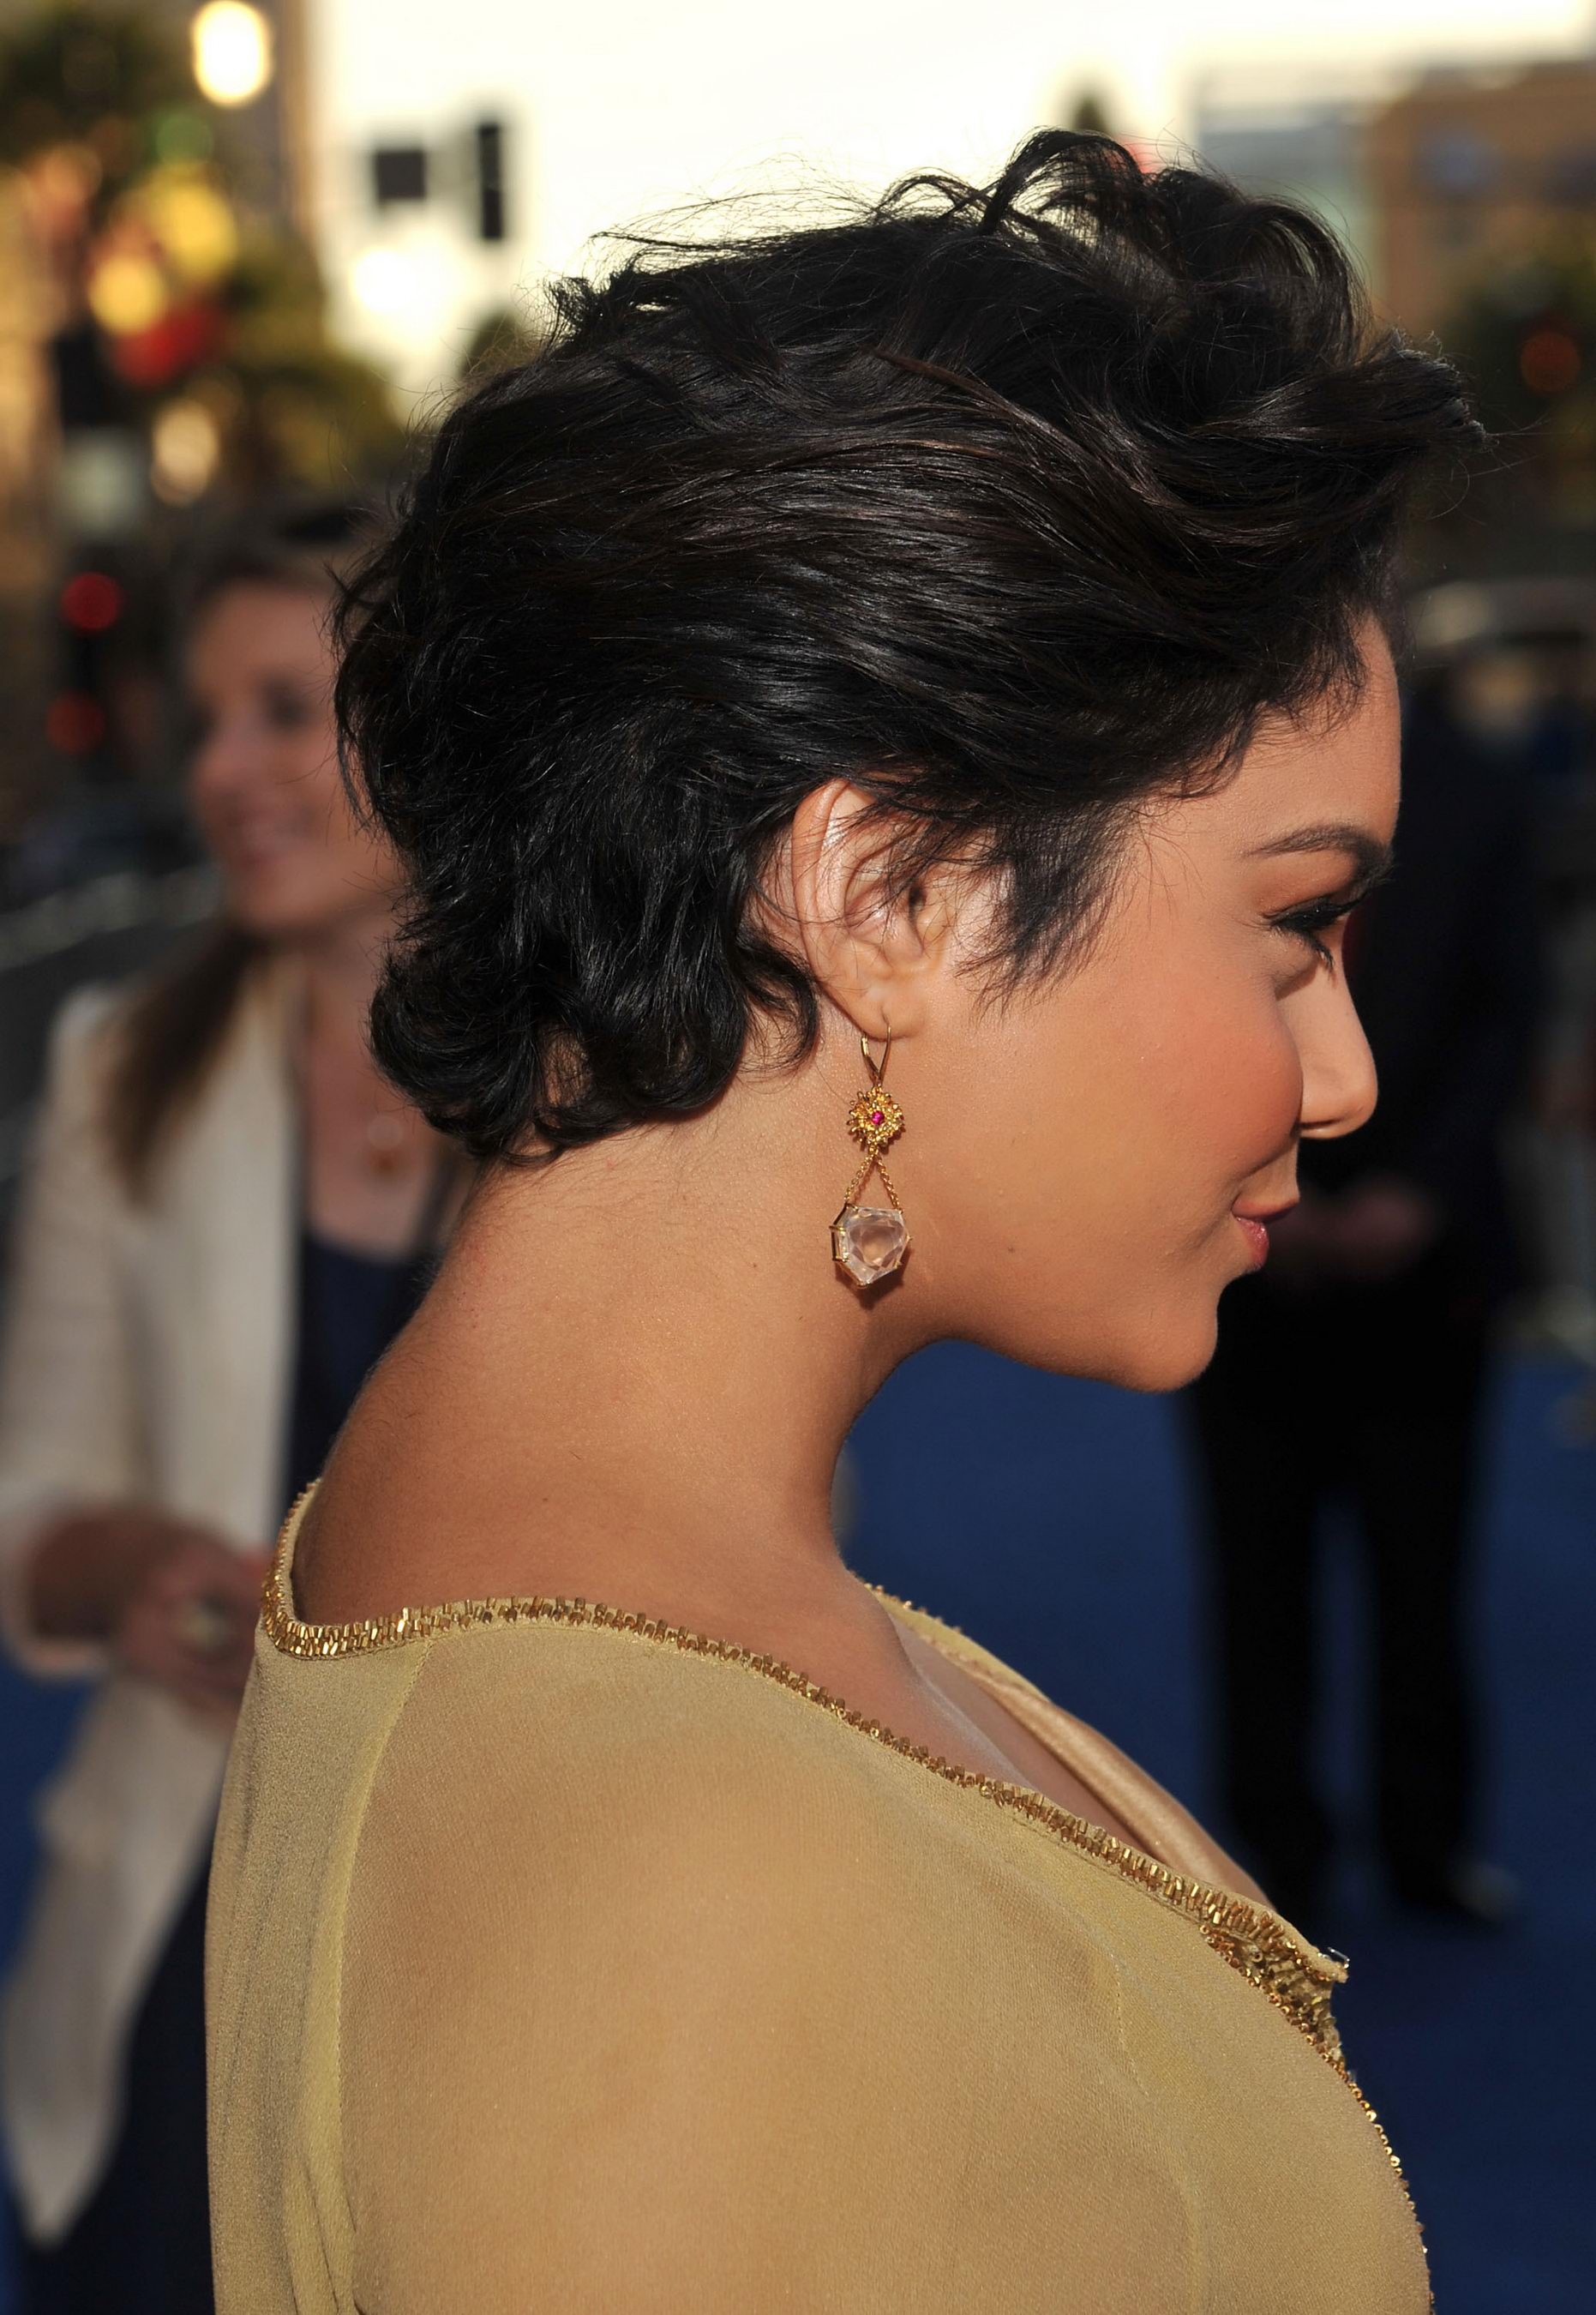 47450_VanessaHudgens_CaptainAmericapremiere_Hollywood_190711_020_122_348lo.jpg